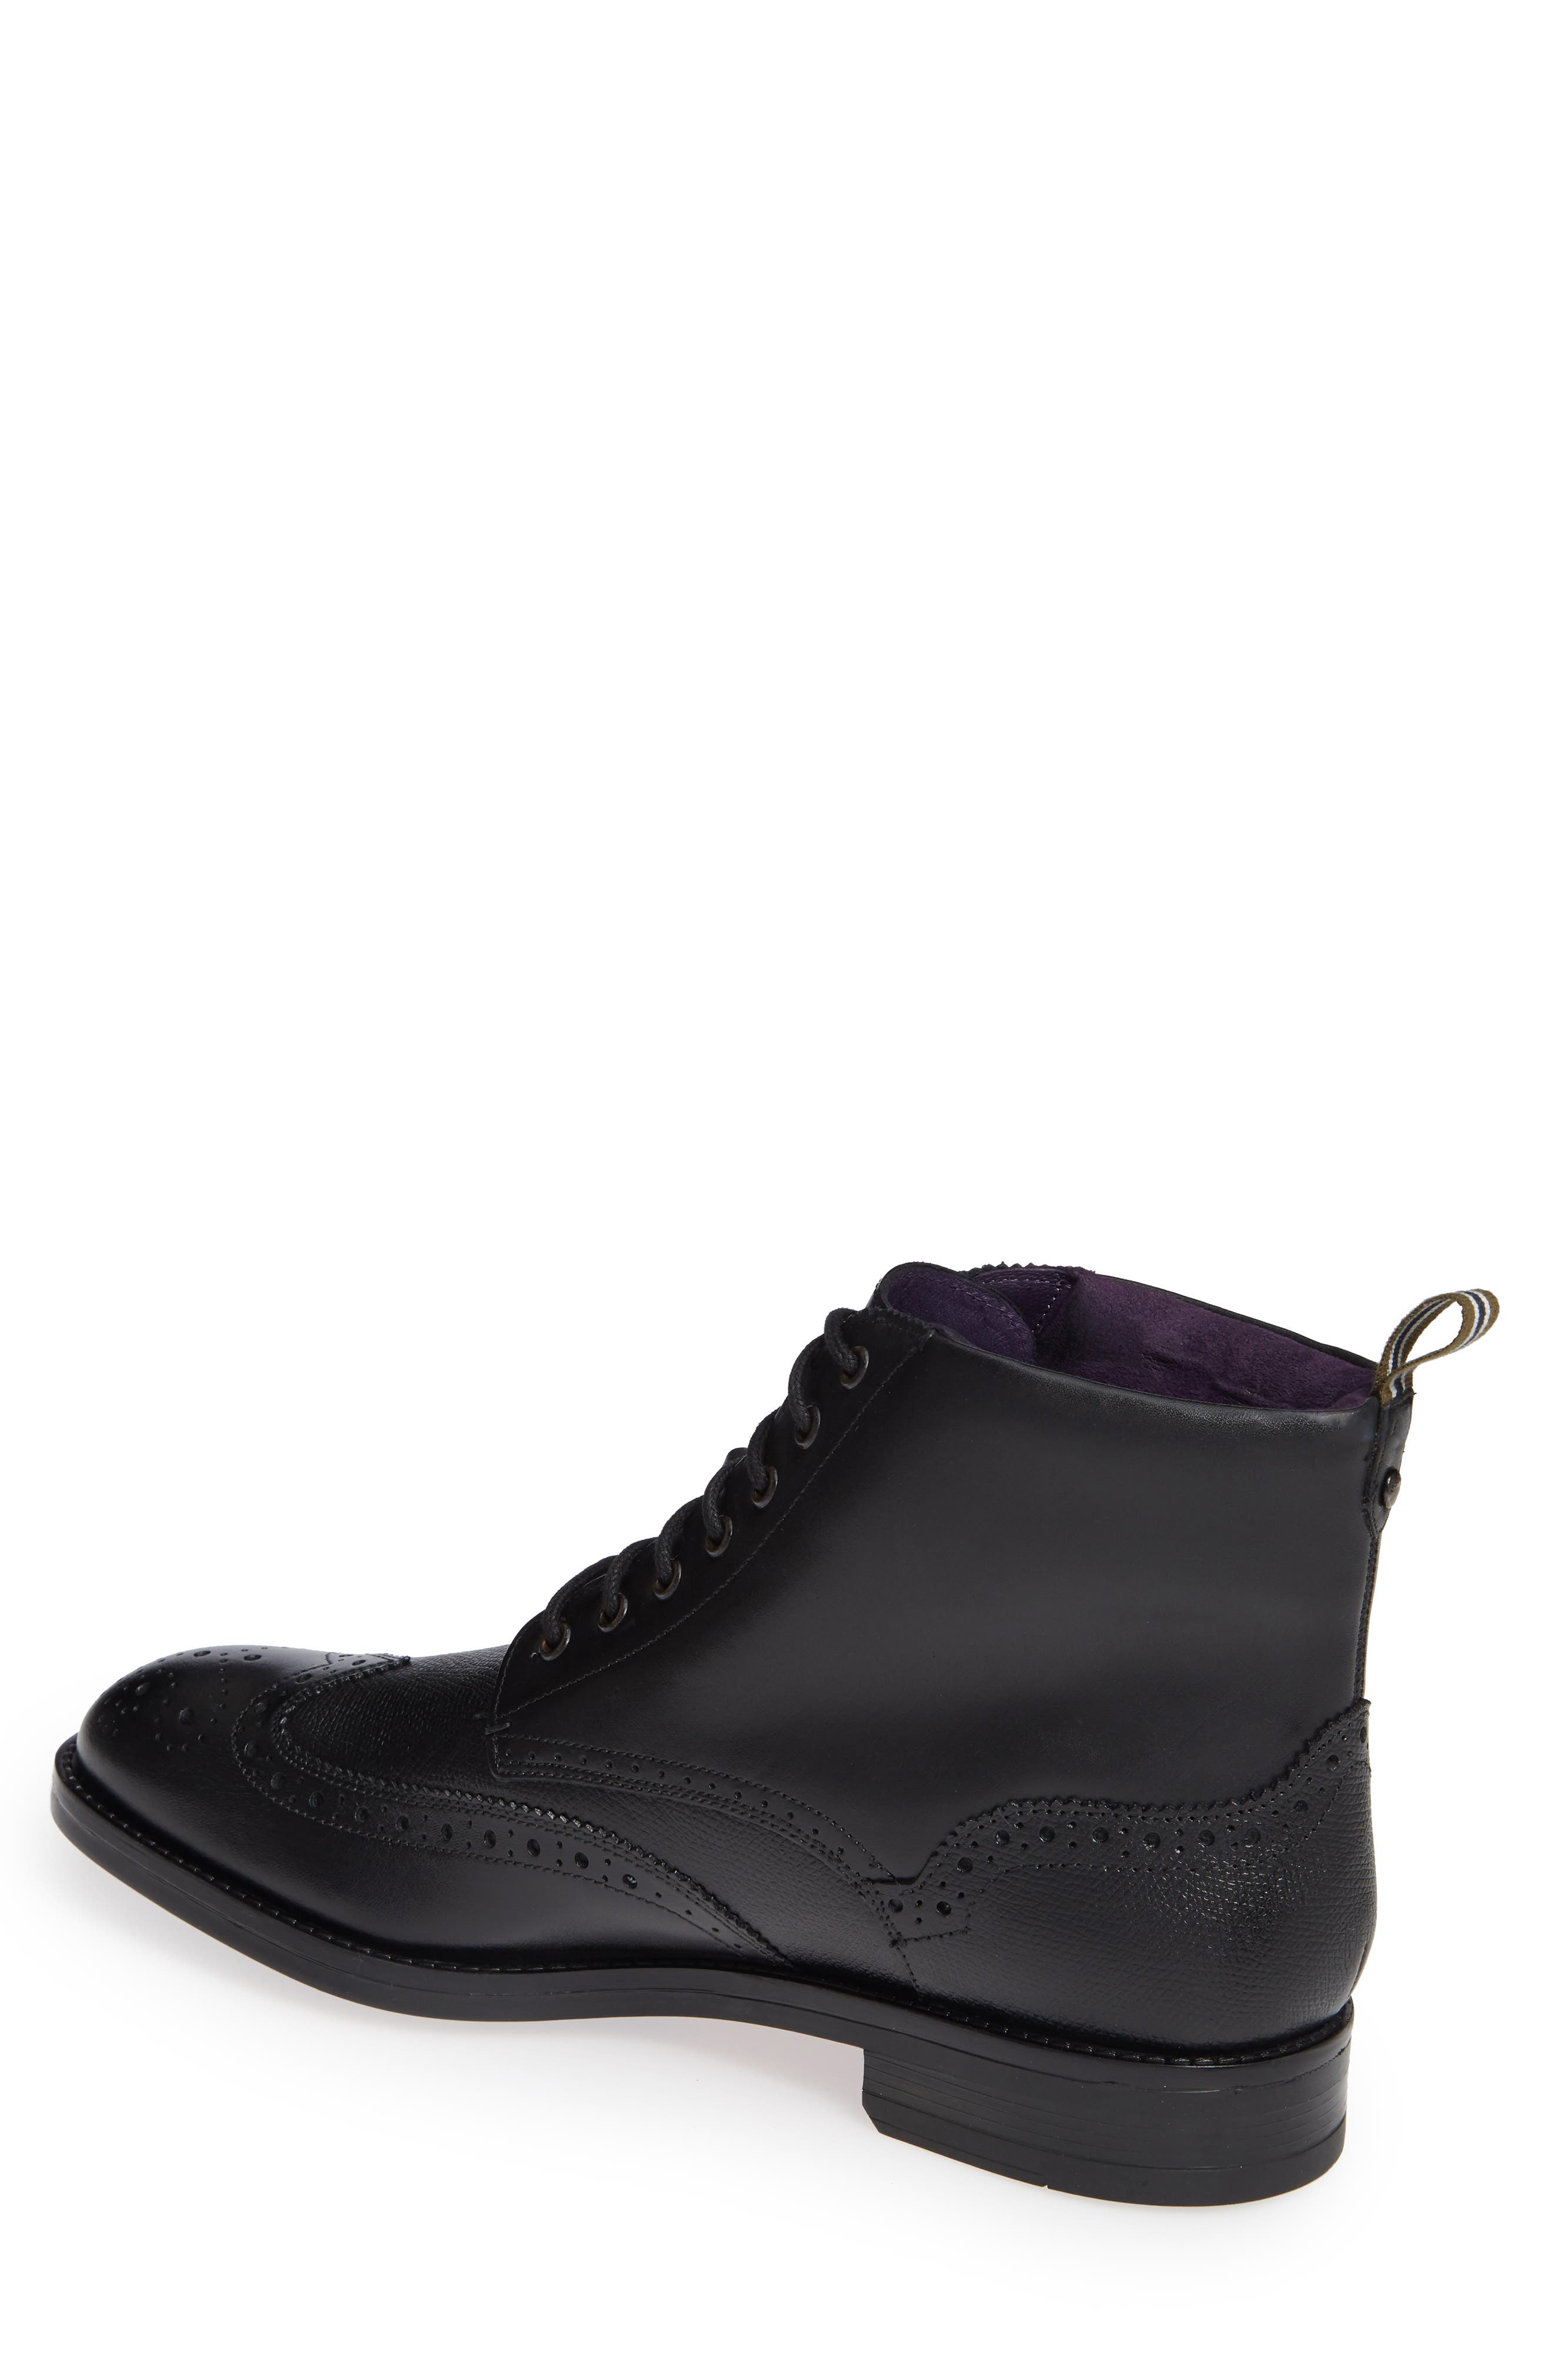 TED BAKER LONDON, Twrens Wingtip Boot, Alternate thumbnail 2, color, BLACK LEATHER